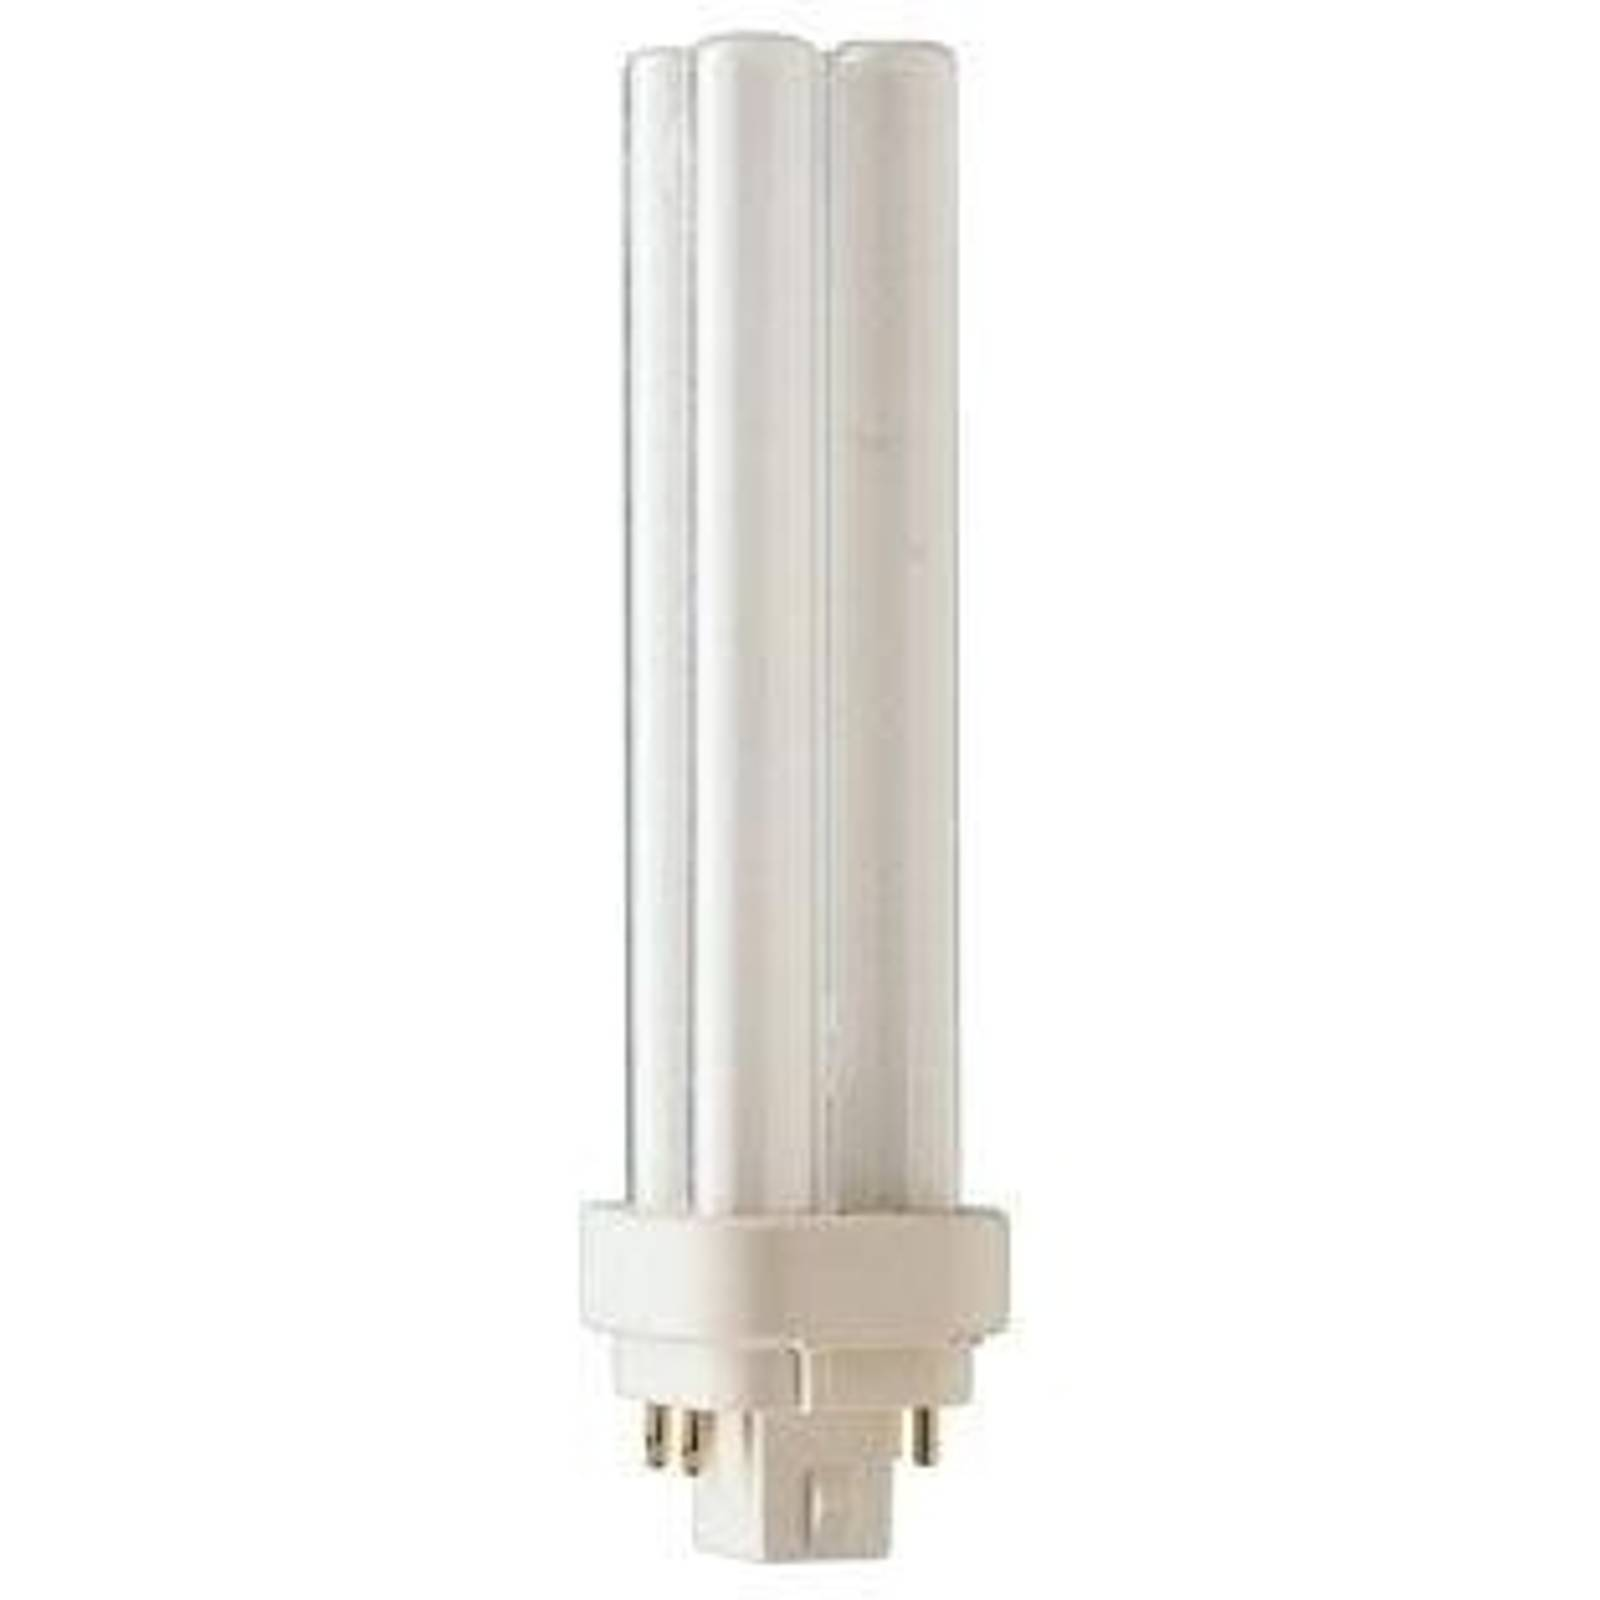 Lighting Fluorescent Neon Tubes Find Philips Products Online At Light Bulbs Diagram Lamp Eurolite 23w Has A G24q Compact Bulb Master Pl C 4pin From Found Lights